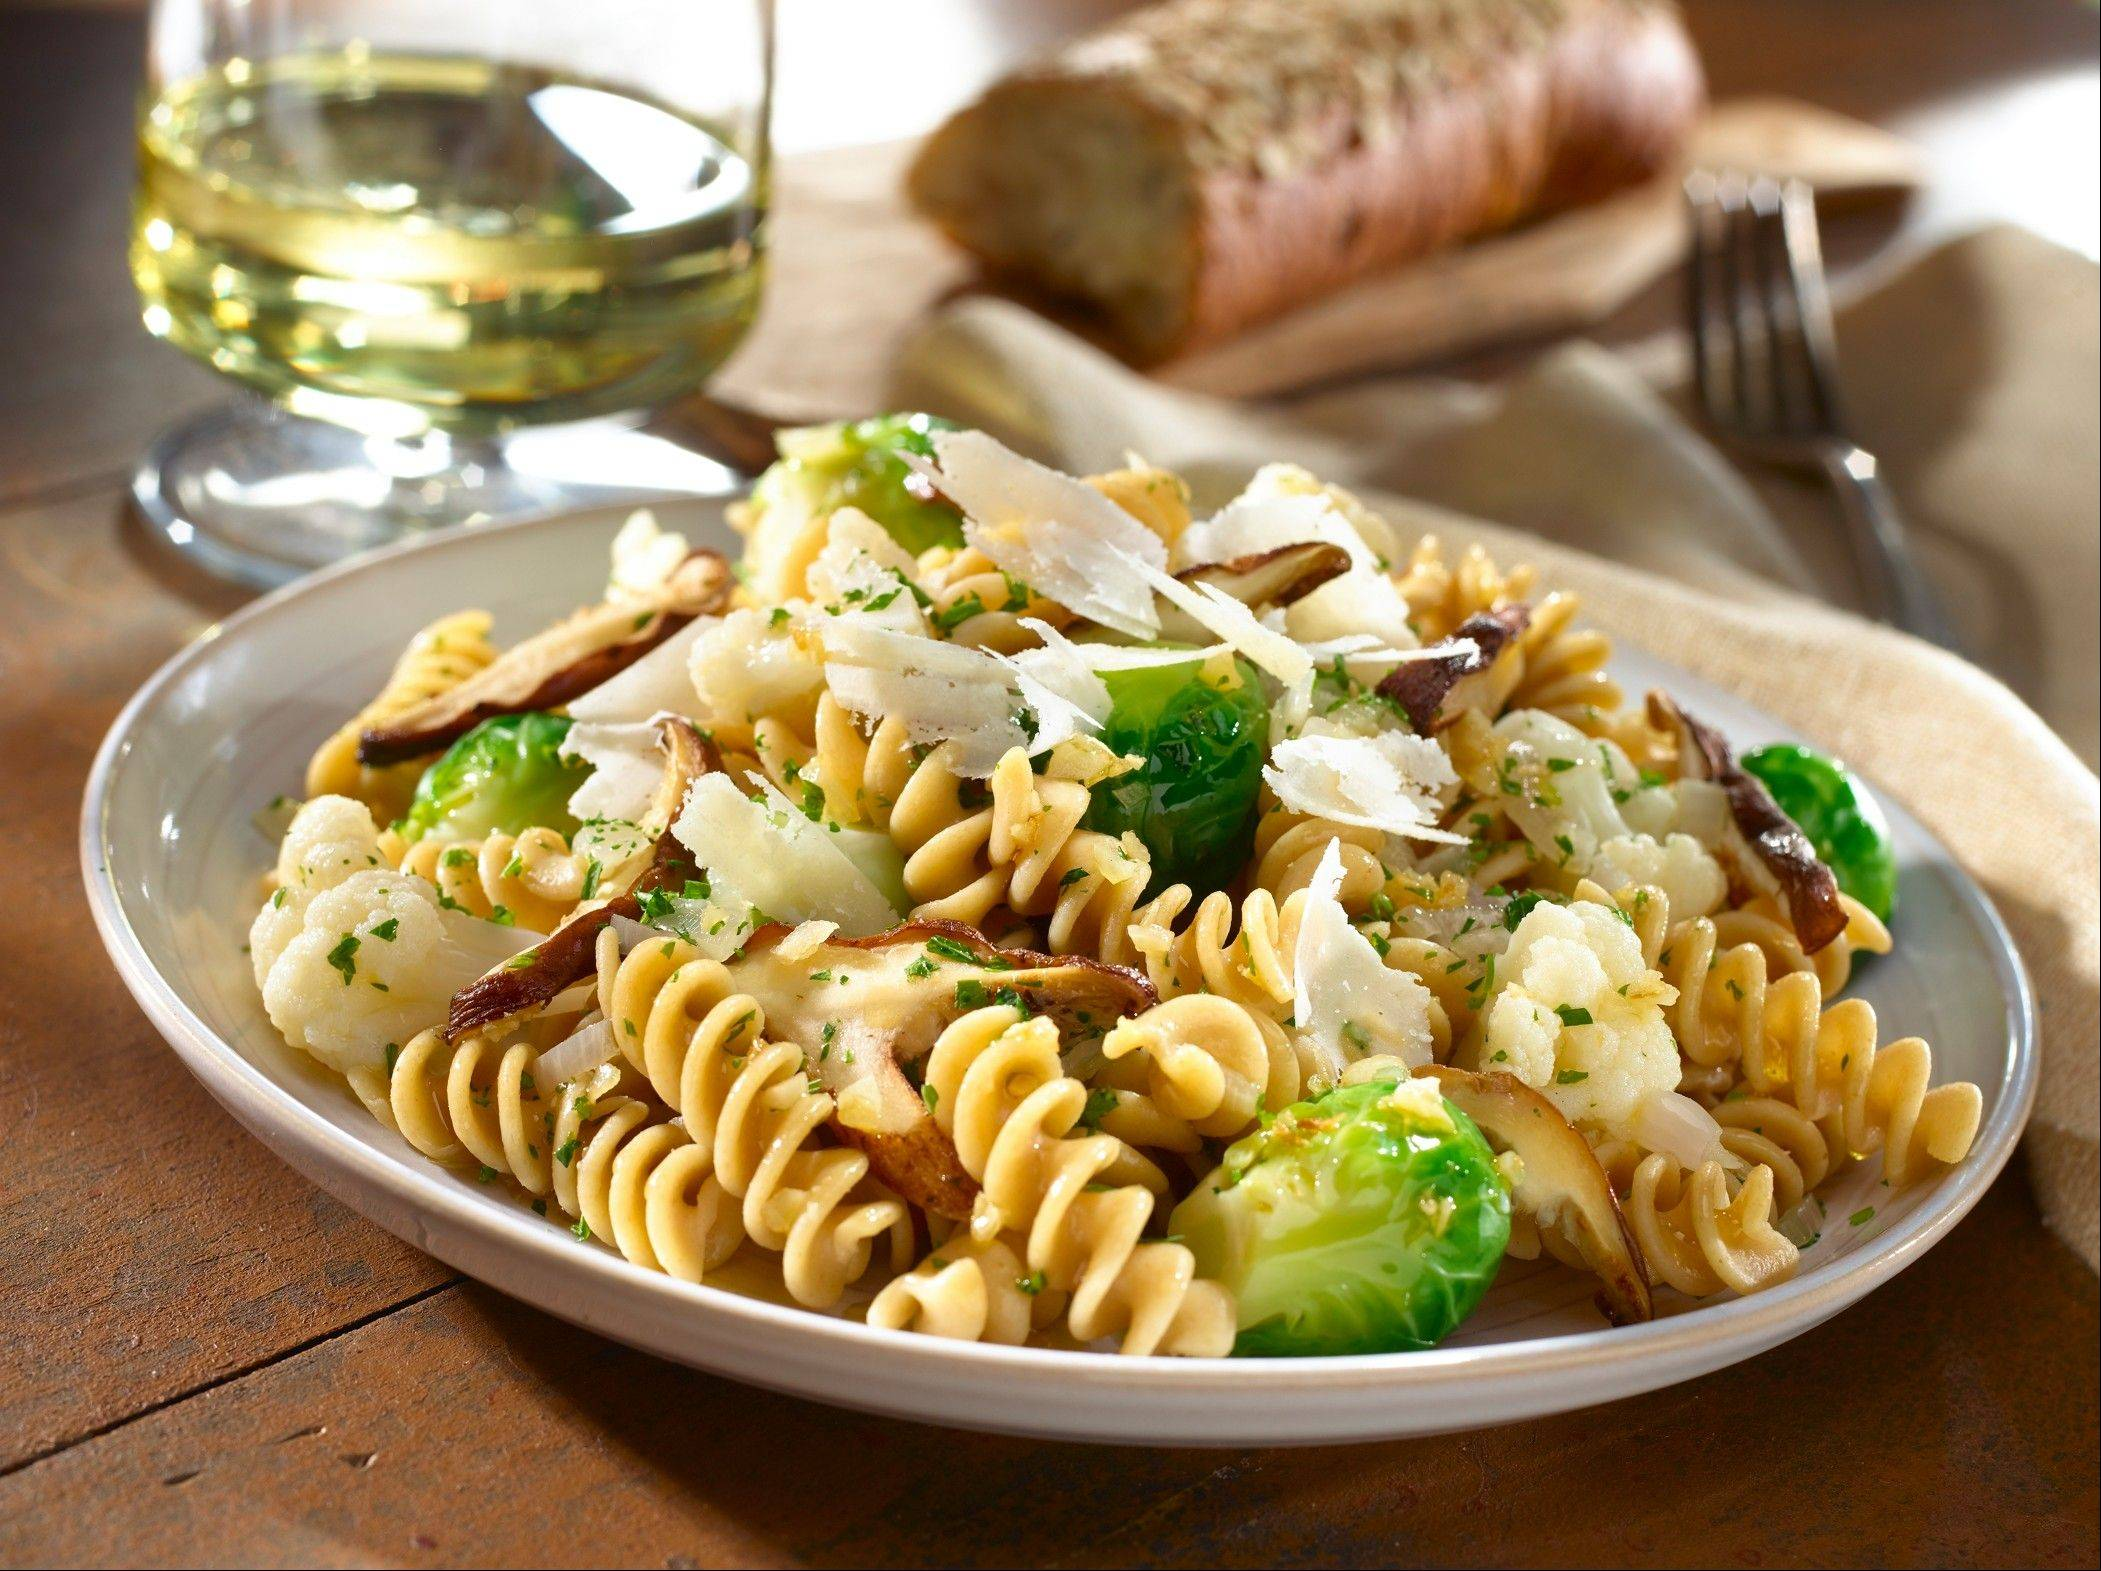 This recipe for Brussels Sprout, Cauliflower and Shiitake Fusilli features De Cecco pasta, which won a gold medal at the 1893 World's Fair.